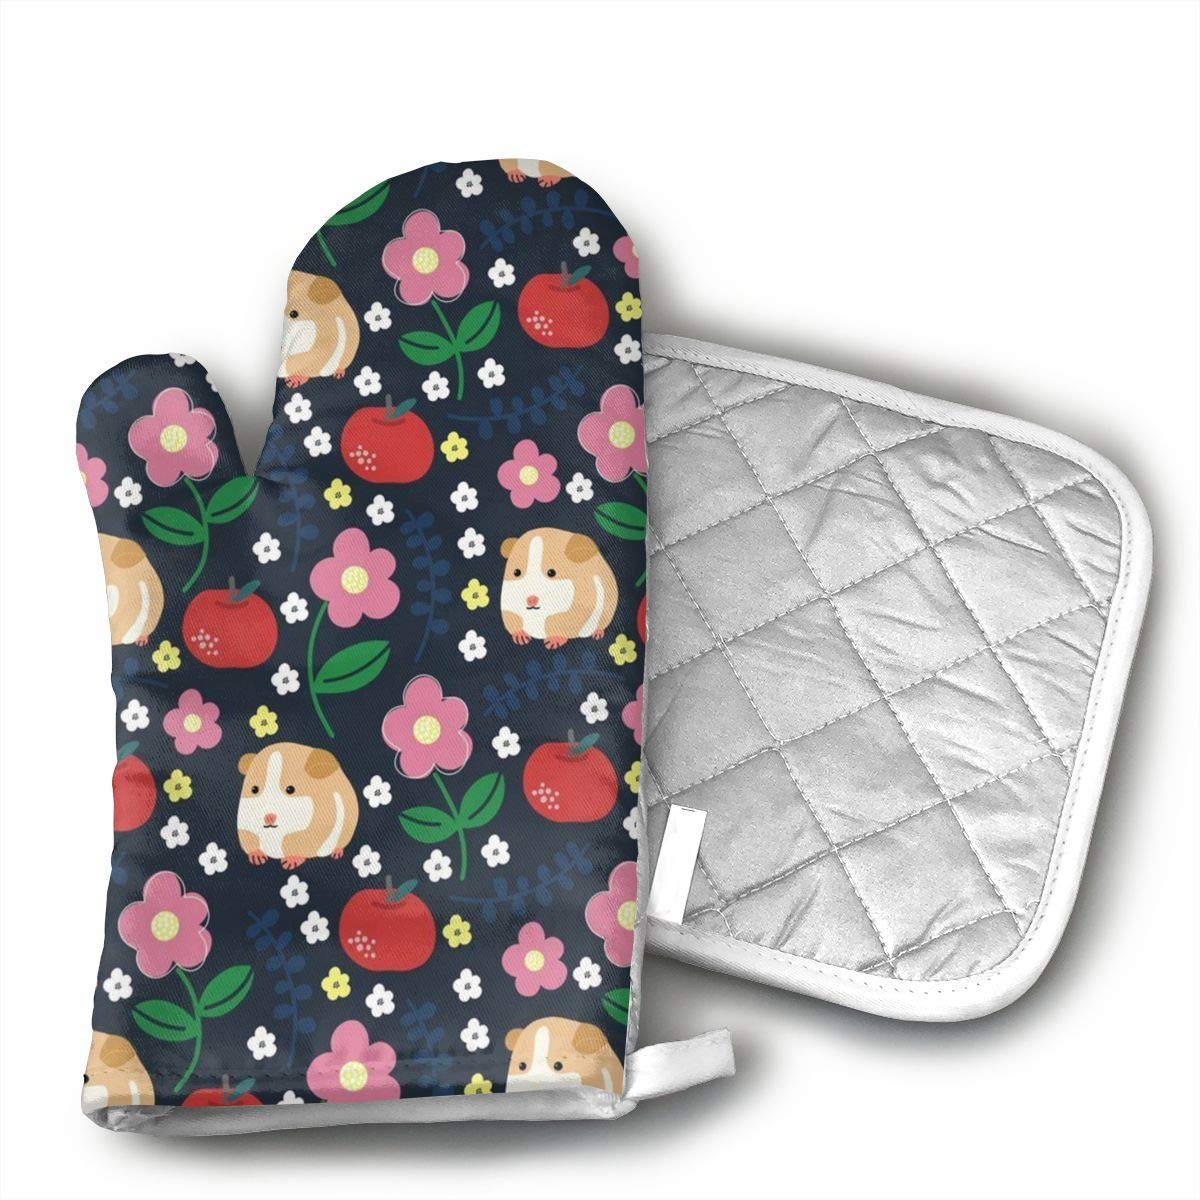 HAOVMM Guinea Pigs and Apples Insulated Oven Mitts and Mat Sets Protect The Hands and Surfaces of All